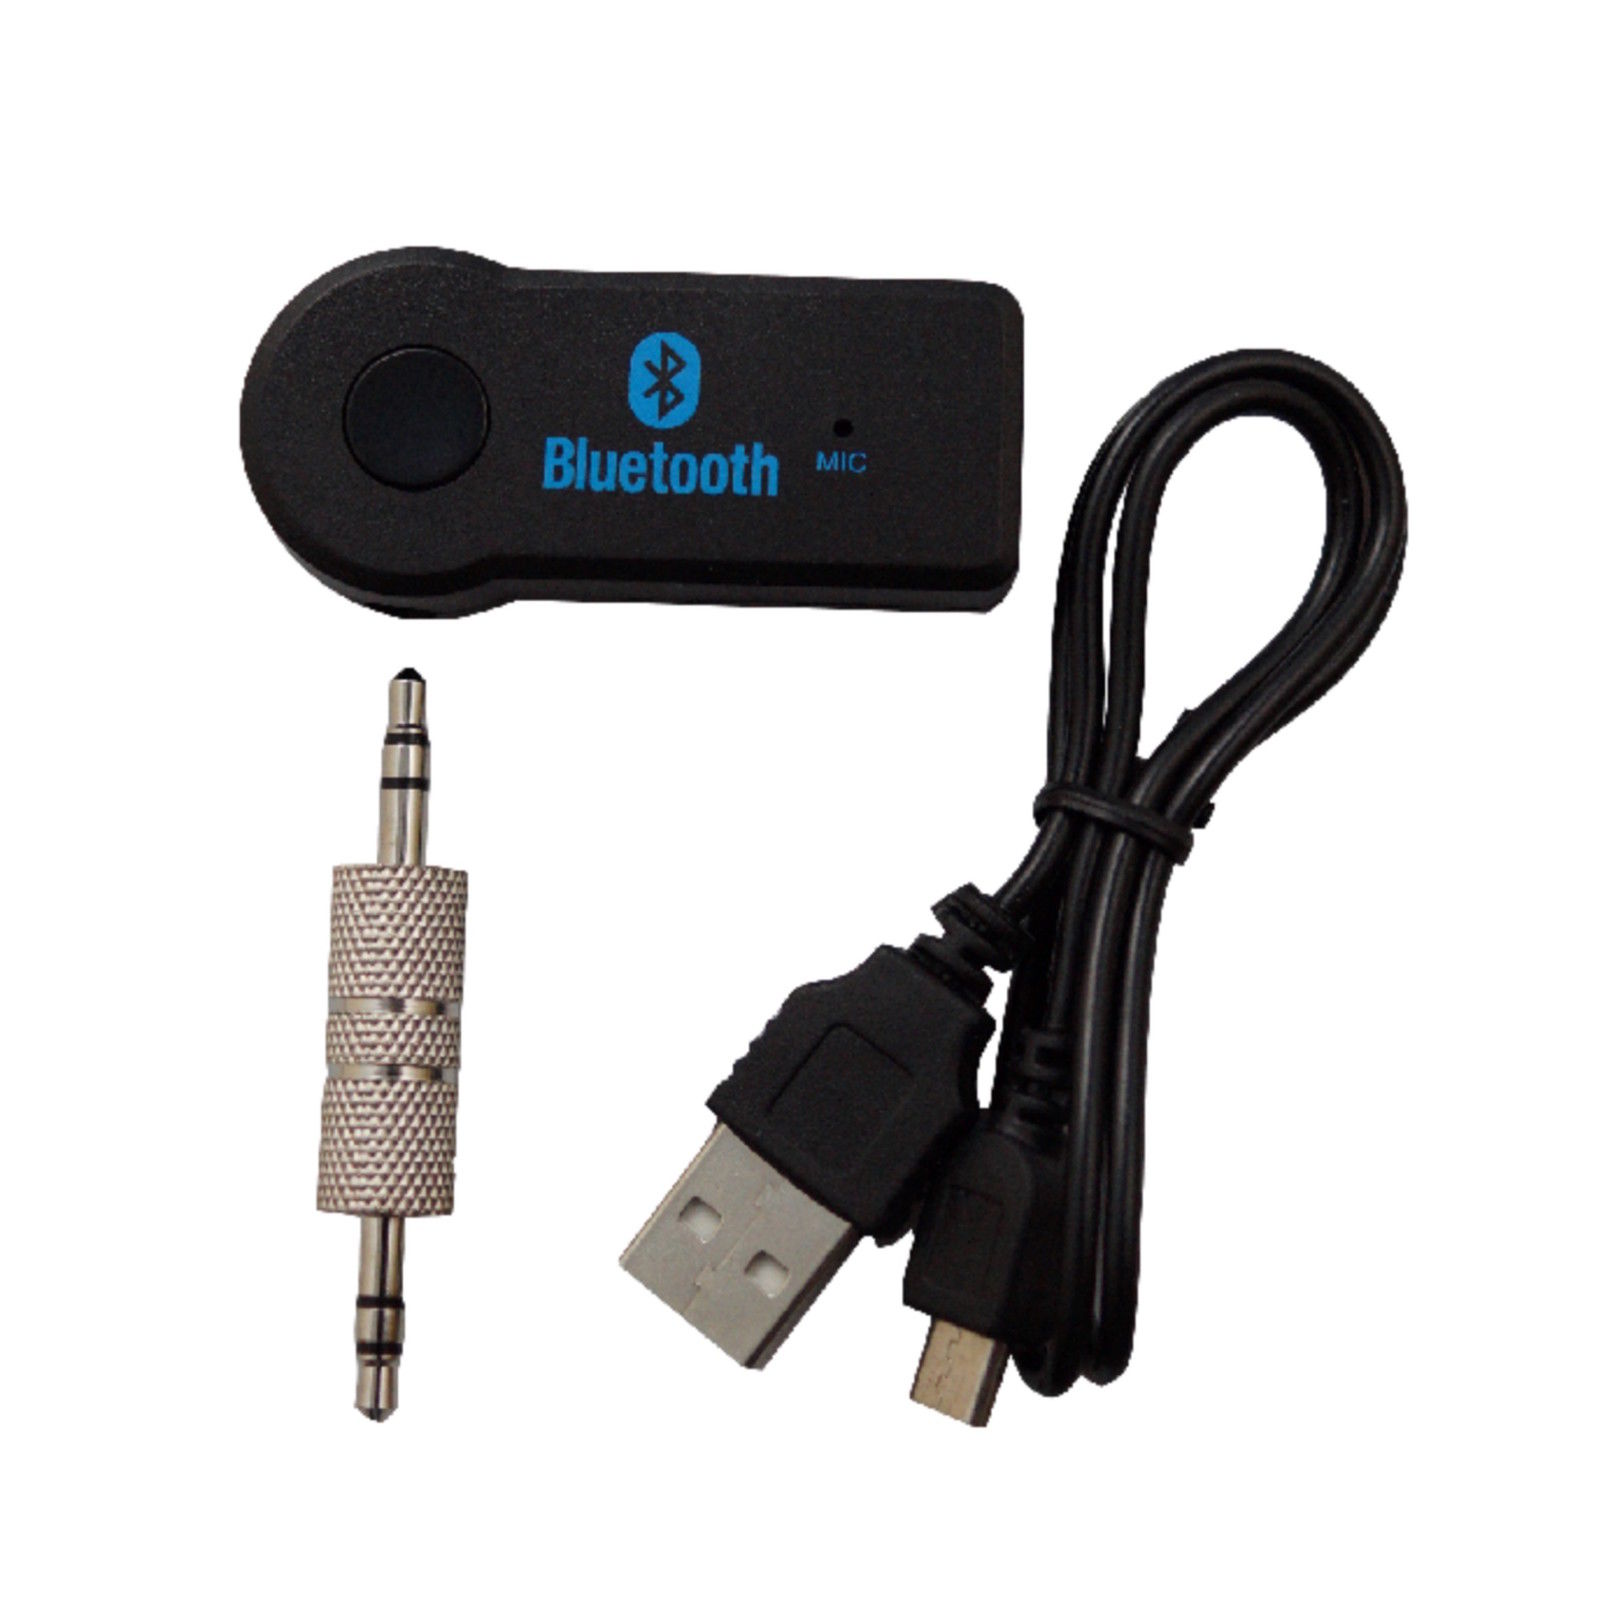 t a bluetooth aux wireless empf nger adapter dongle musik audio stereo kfz heim ebay. Black Bedroom Furniture Sets. Home Design Ideas